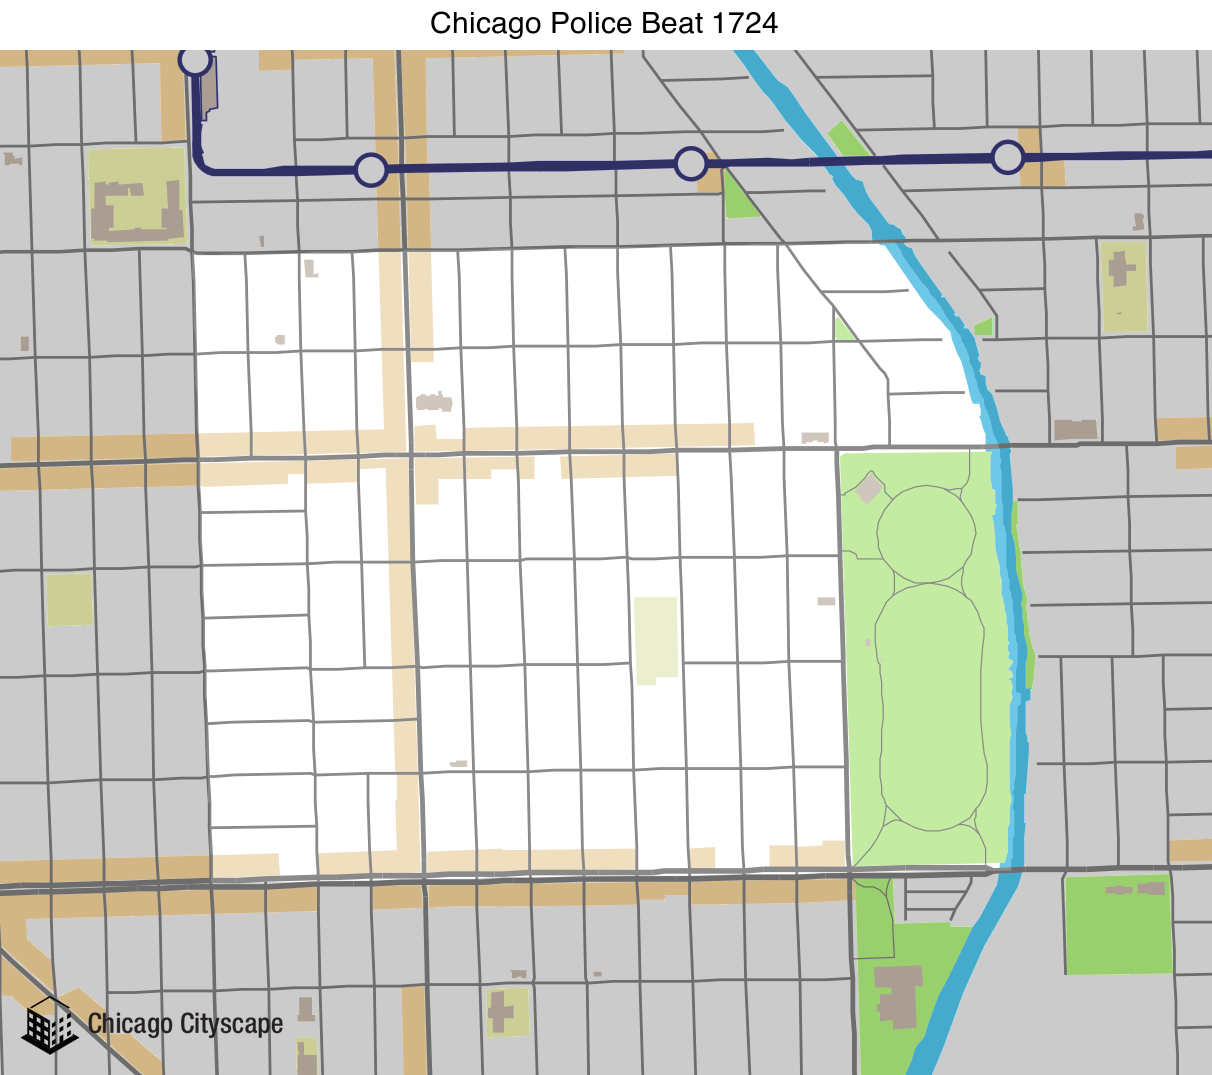 map of district 17 beat 1724 chicago police beat designed by chicago cityscape